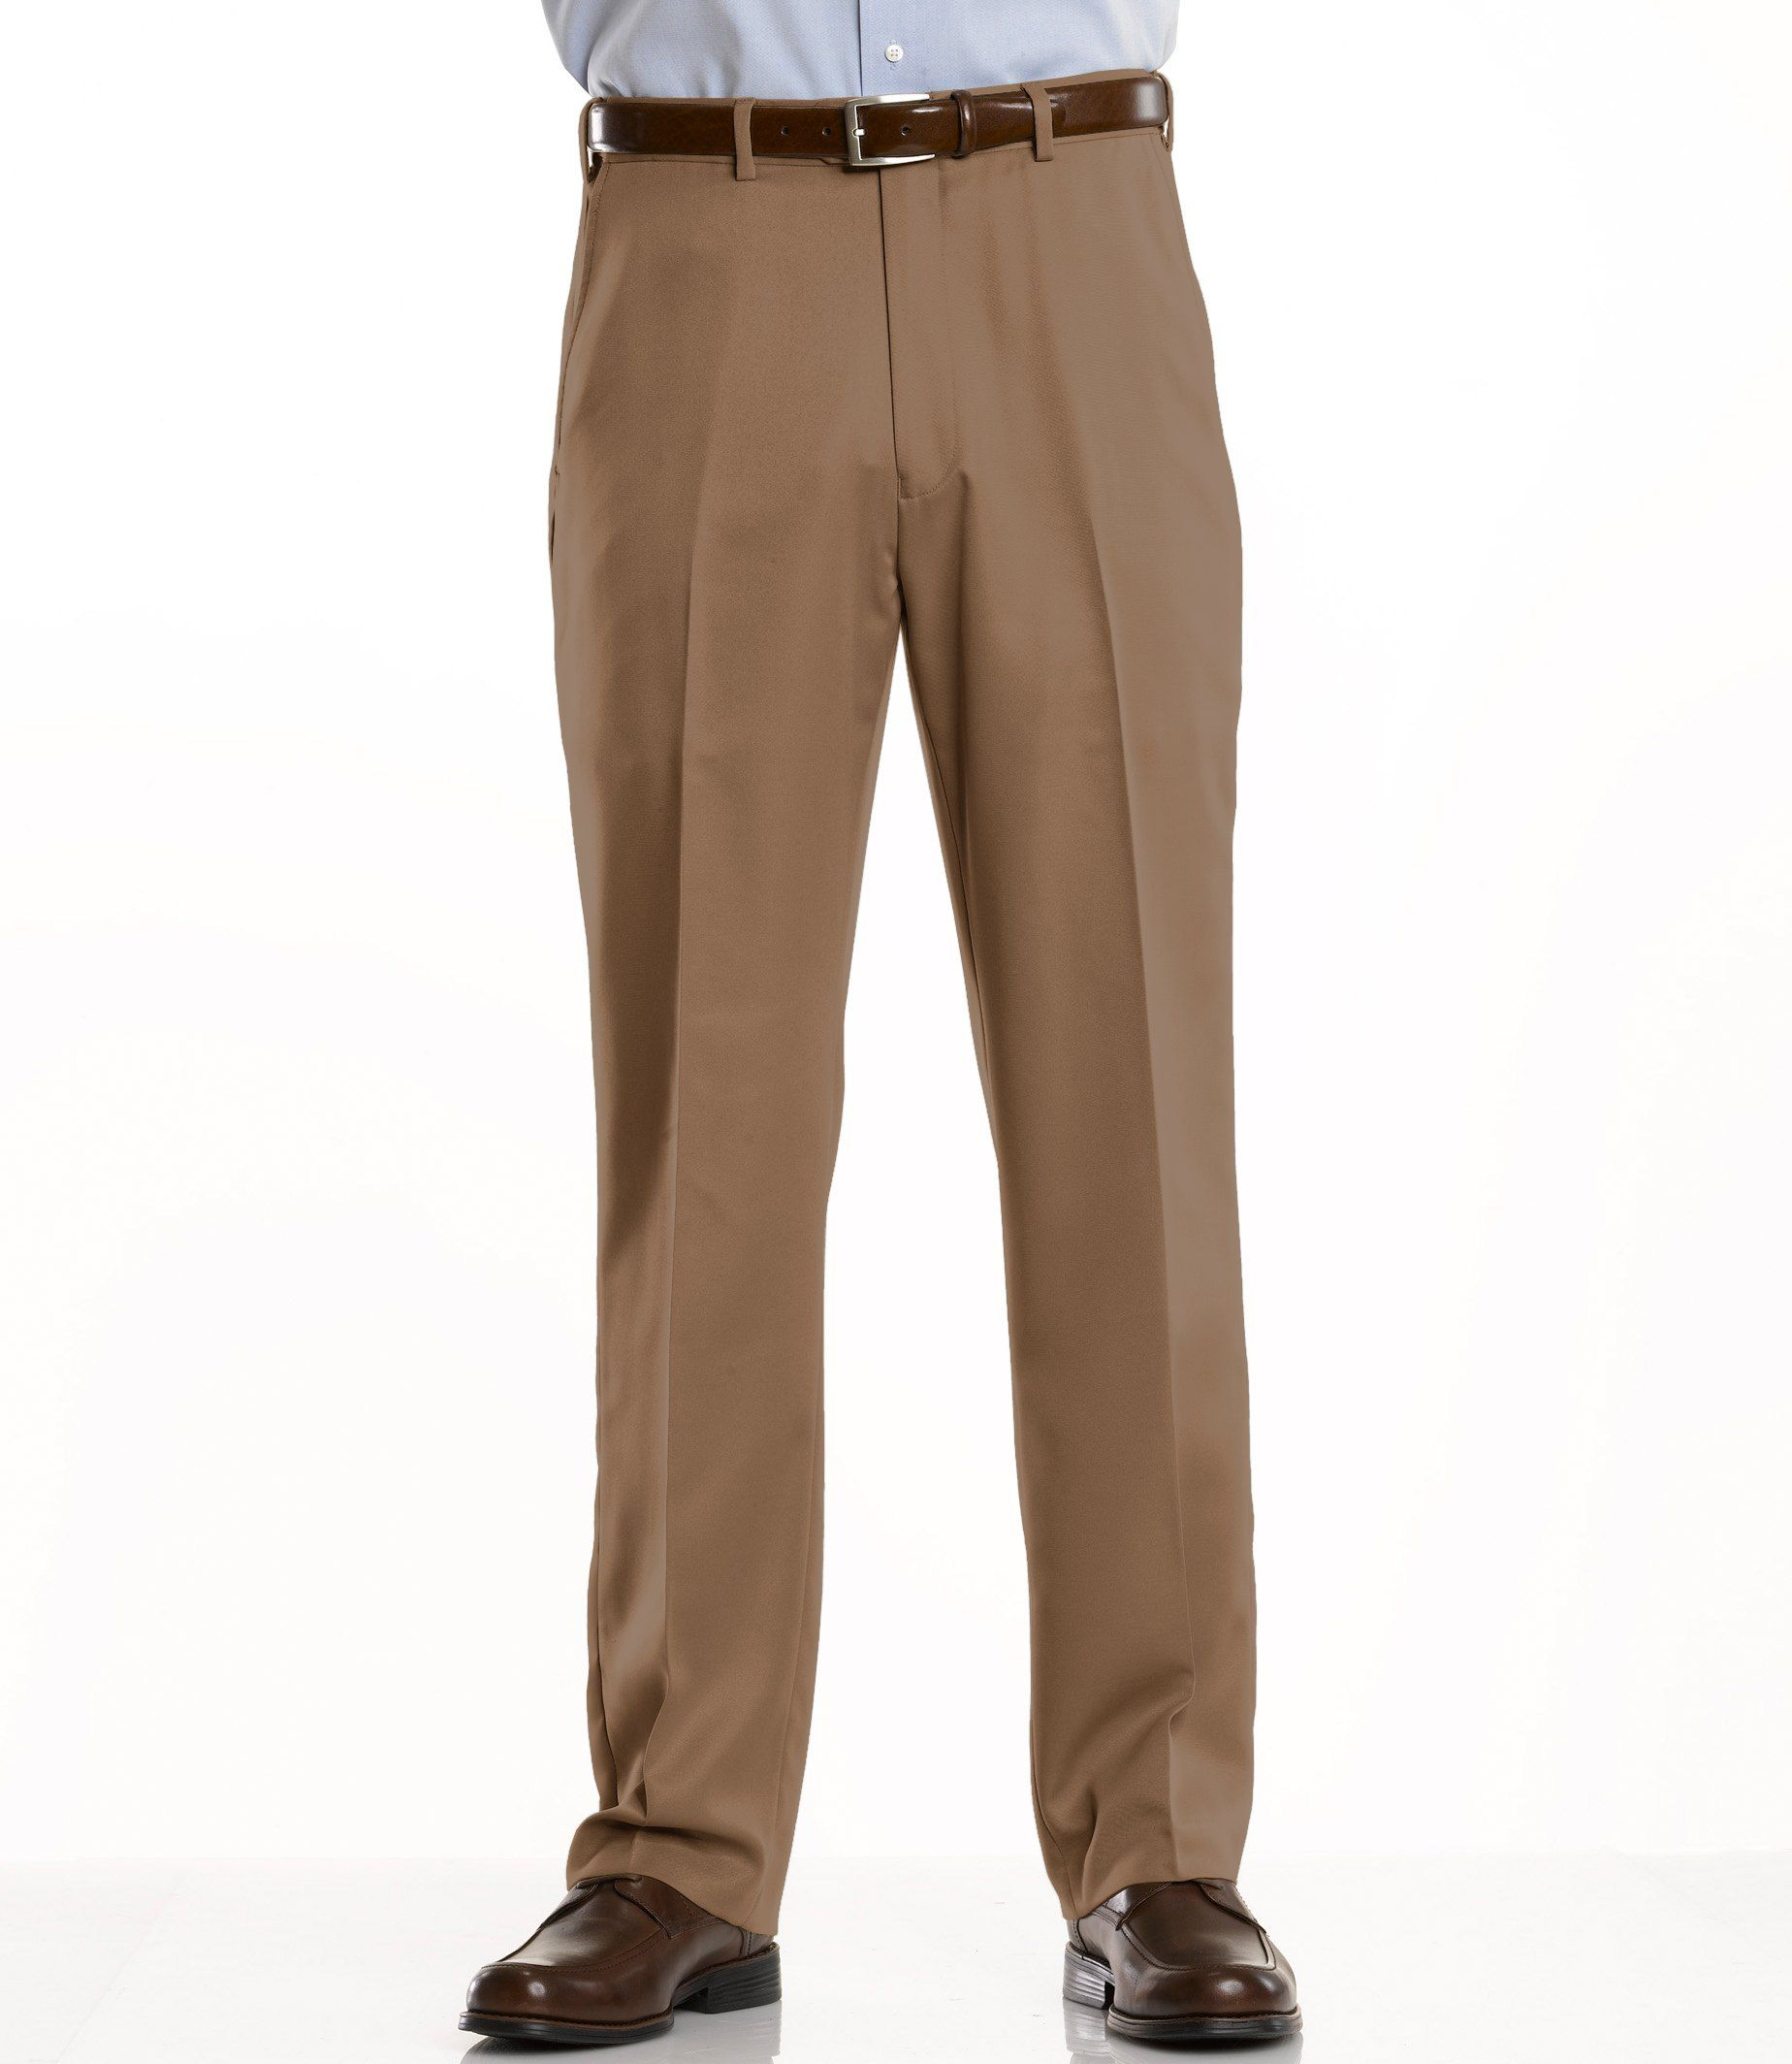 Trouser Pants. For work or for play, choose trouser pants to help you get through the many life occasions. A trouser is a great choice for men or women at the office, out on date night or even for those casual days spent running errands.